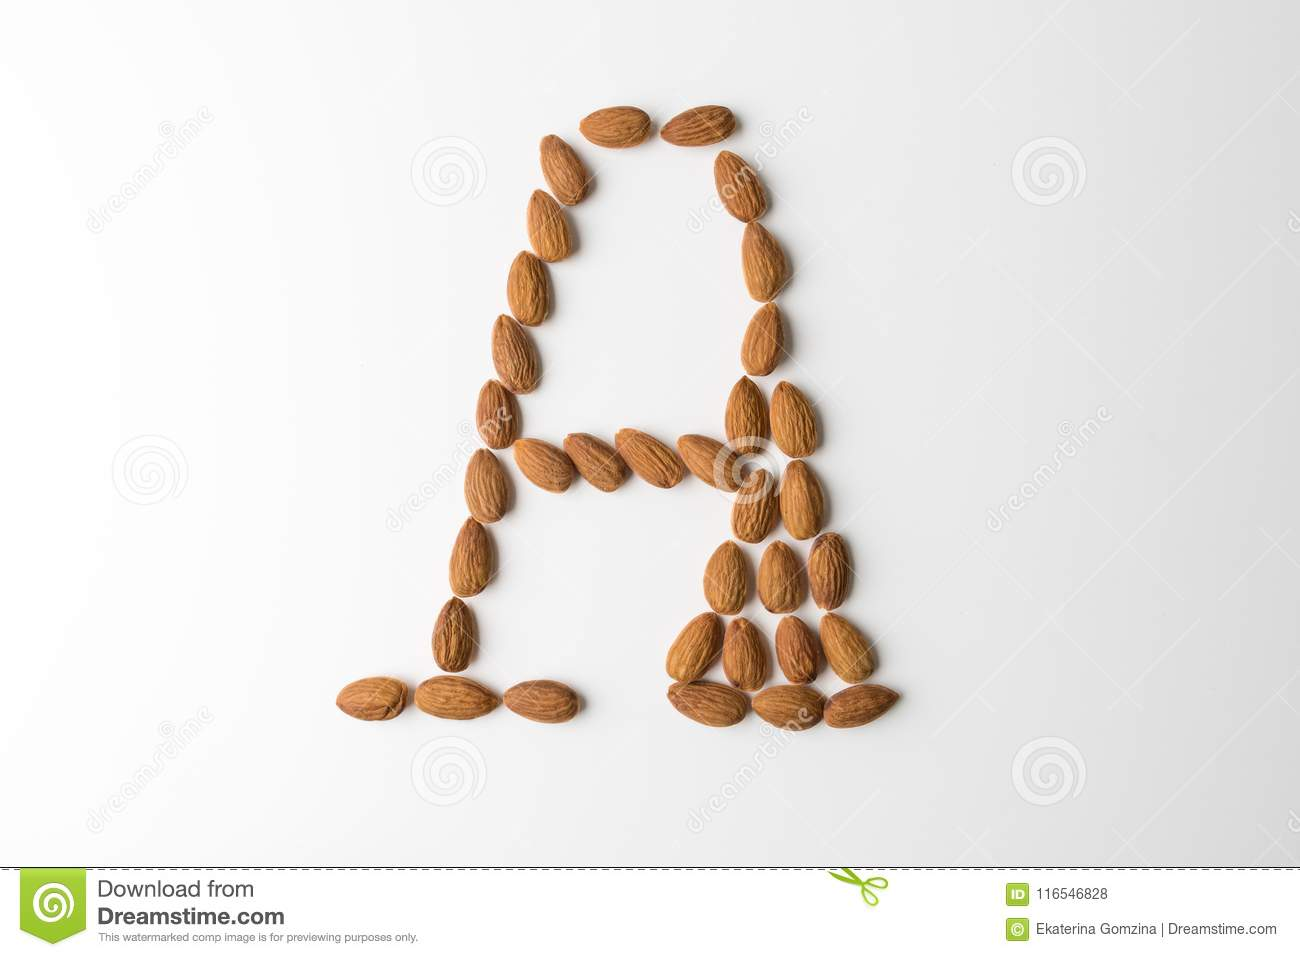 Nuts, almond, tasty and healthy food with lots of vitamins. Almond nuts placed in form of letter A. Concept design